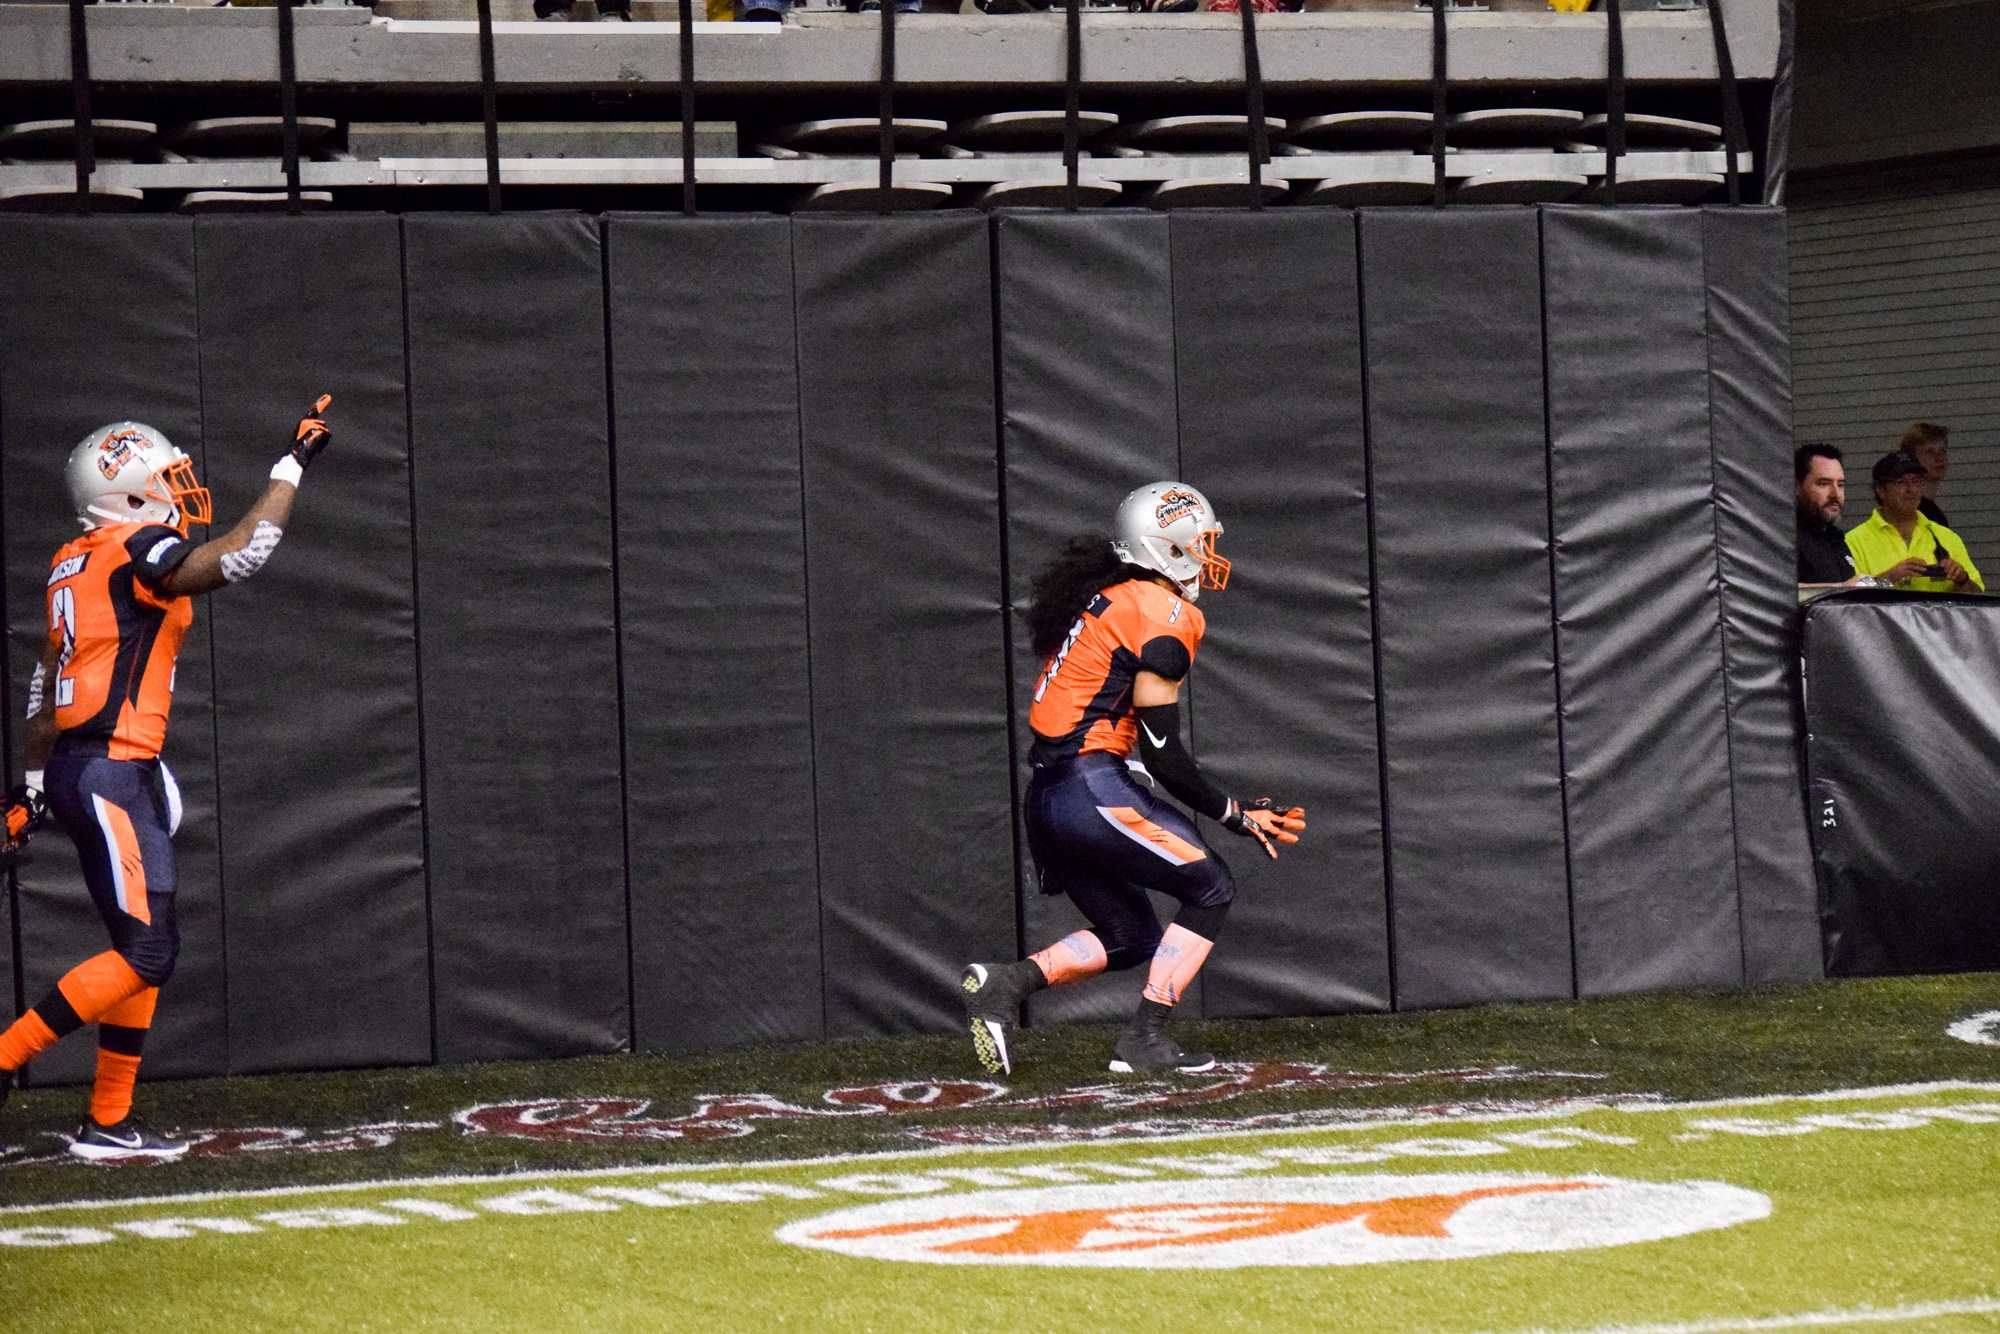 Malachi Jones scoring a touchdown during the first ever Grizzlies game. The Grizzlies are an indoor football team.